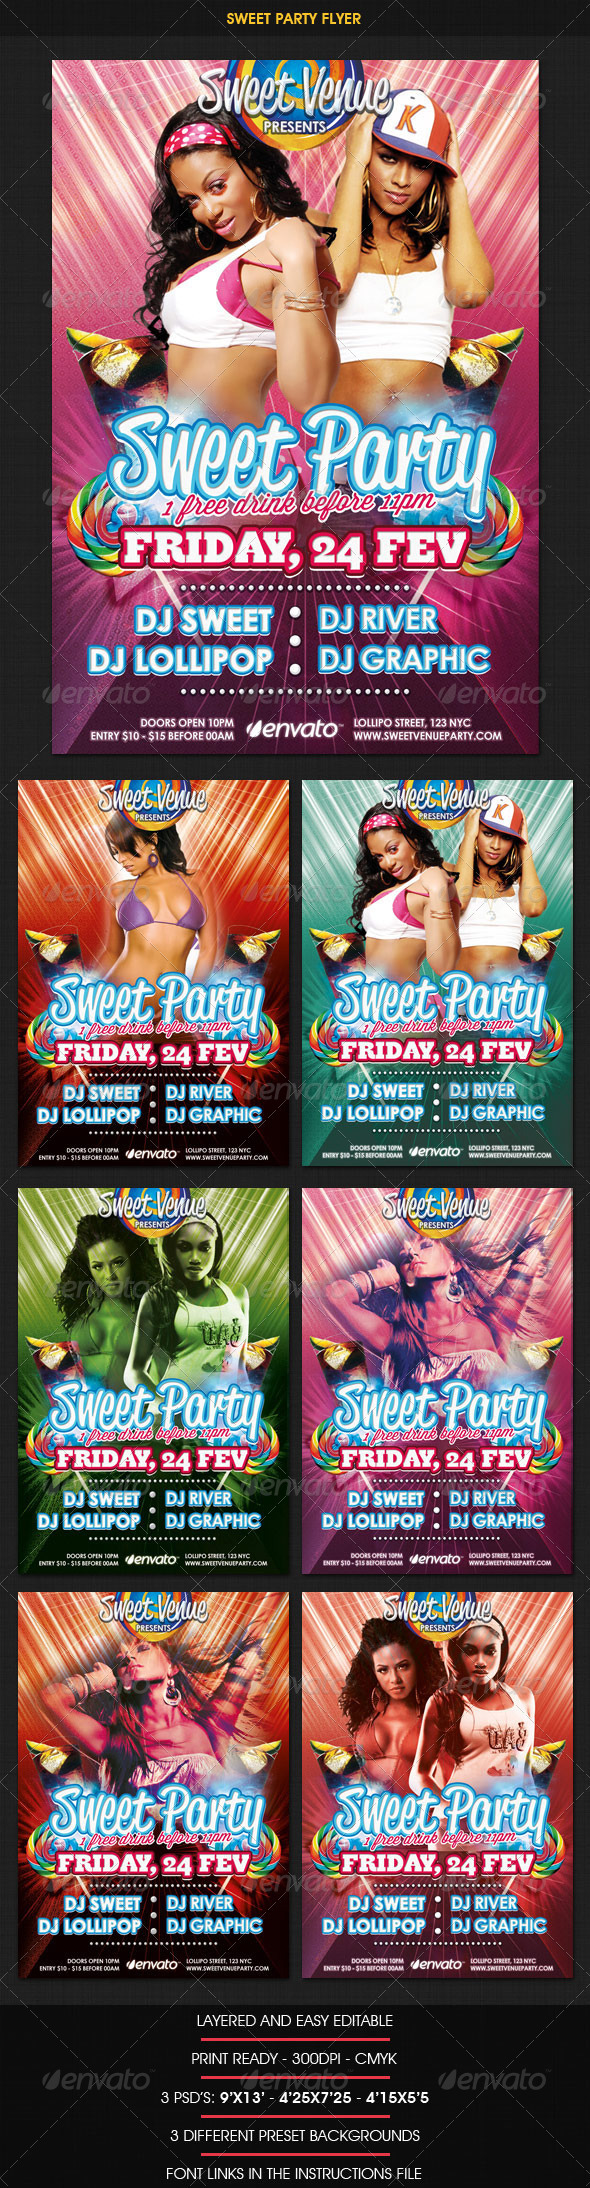 Sweet Dance Party Flyer - Clubs & Parties Events